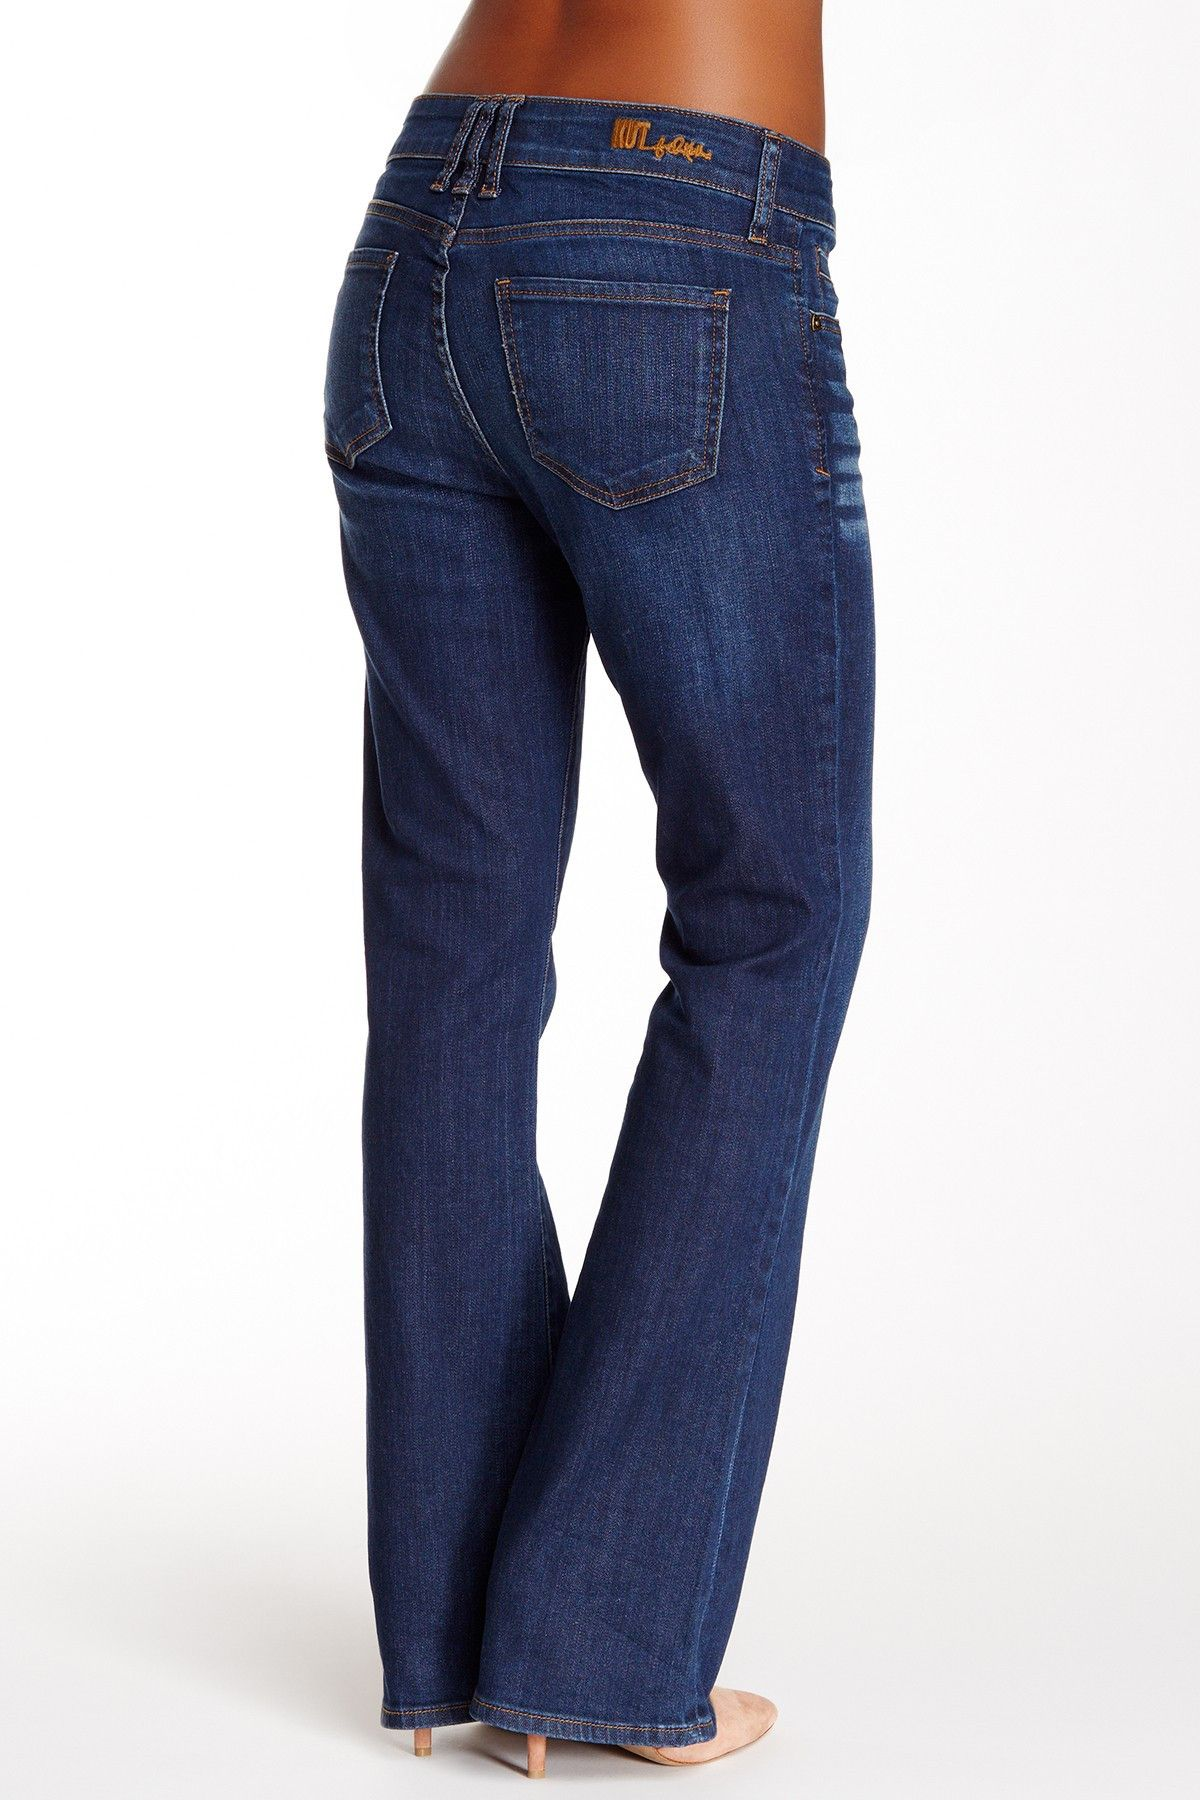 de00321f069 KUT from the Kloth - Nicole High Rise Bootcut Jean (Petites) at Nordstrom  Rack. Free Shipping on orders over $100.